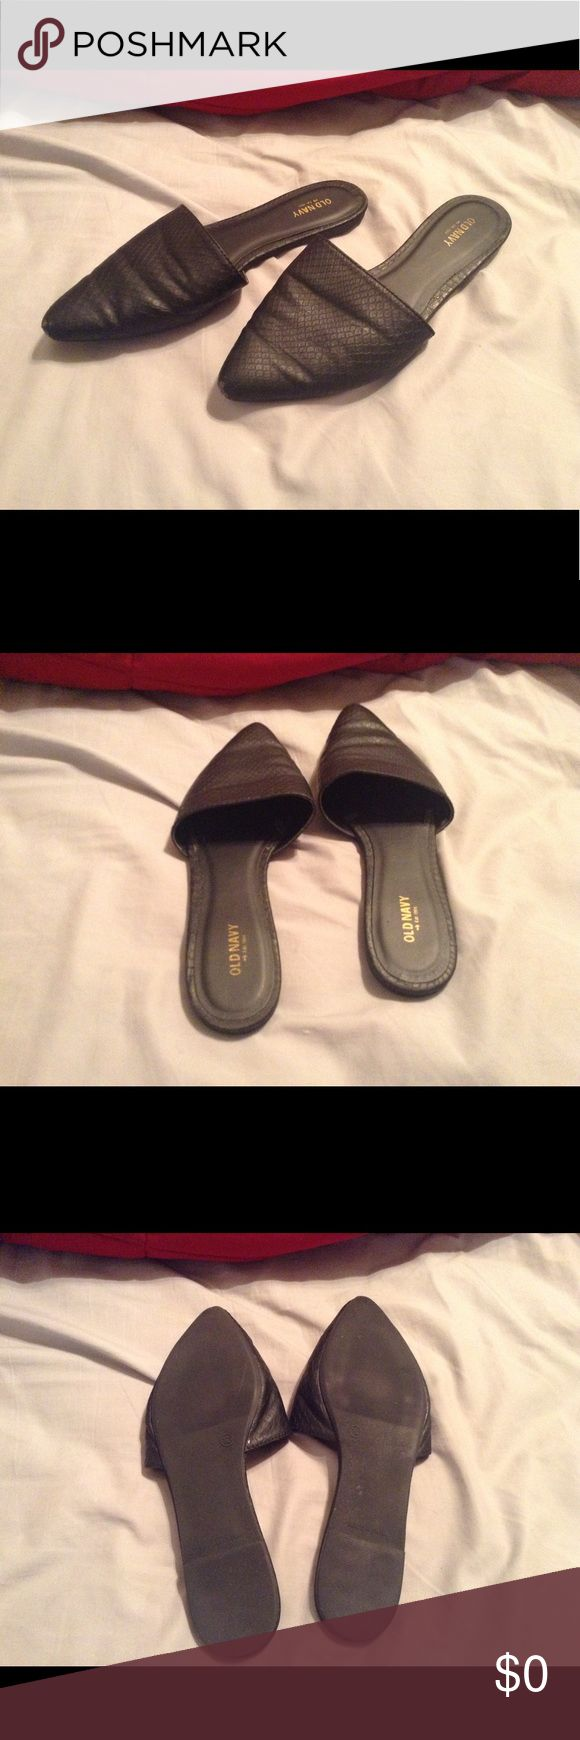 Old Navy mule flat slippers Looking to find more of these shoes in size 10 and larger, preferably 11-12. Any and all conditions will be considered. Old Navy Shoes Mules & Clogs